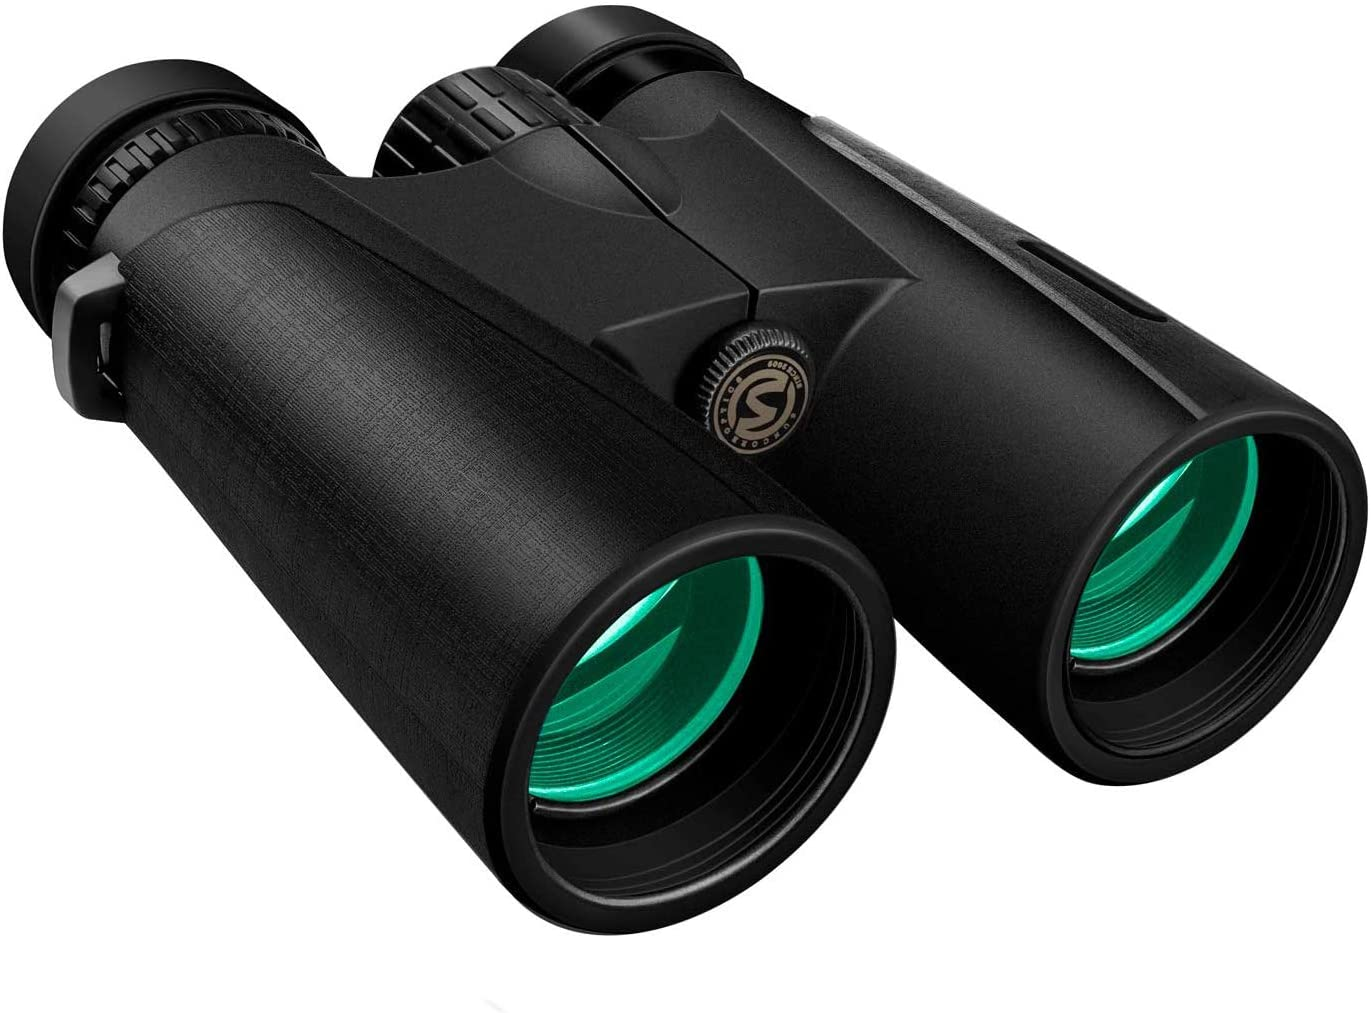 Cayzor 12×42 Binoculars for Adults – Professional HD Clear Weak Light Vision for Bird Watching Traveling Concerts Sports – BAK4 Prism FMC Lens